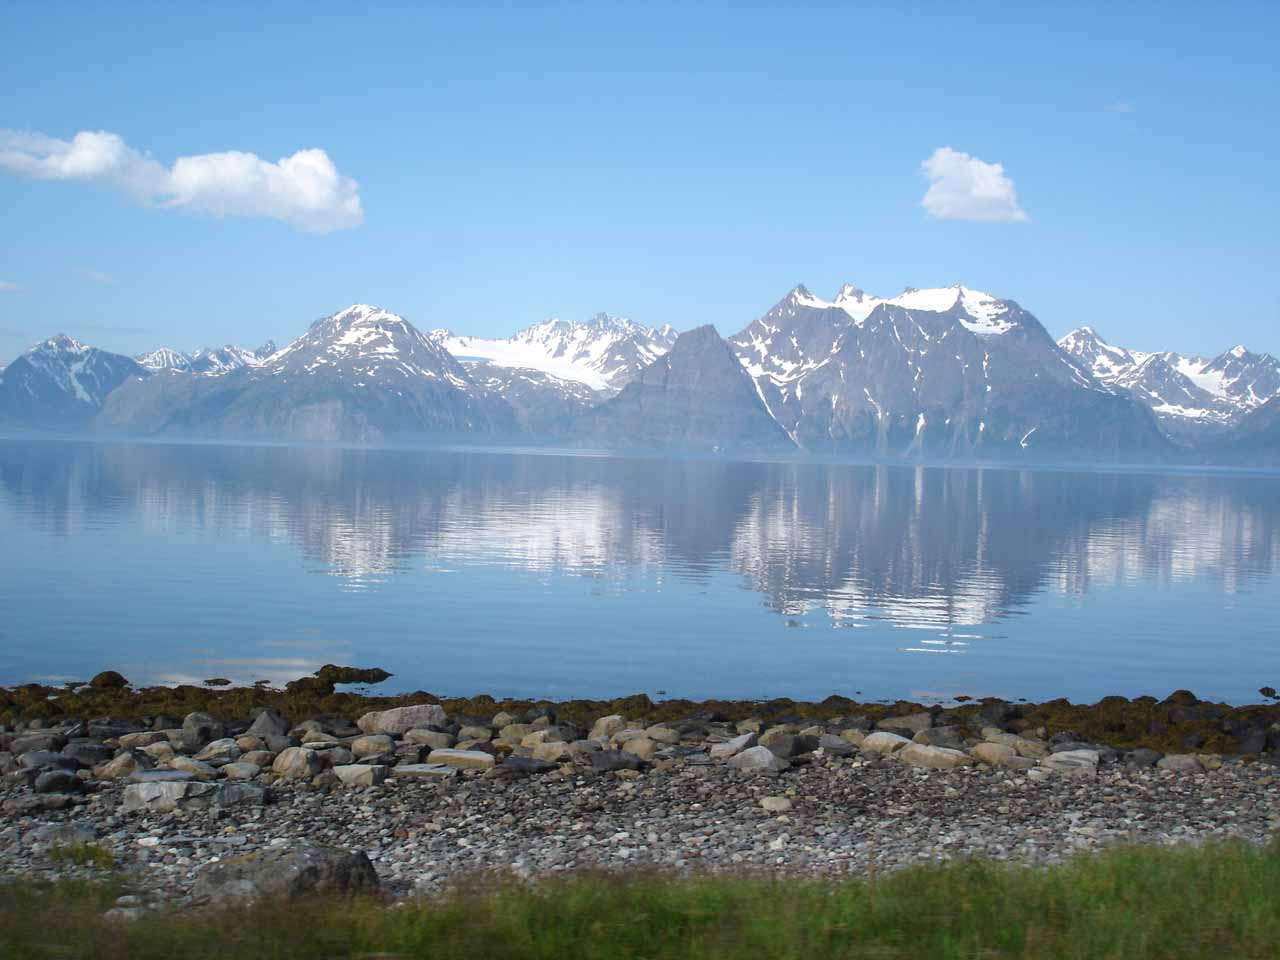 Looking across the Lyngen Channel towards the dramatic Lyngen Alps, which very much reminded me of the way the skyline of the Grand Tetons rise above Jackson Lake in Wyoming